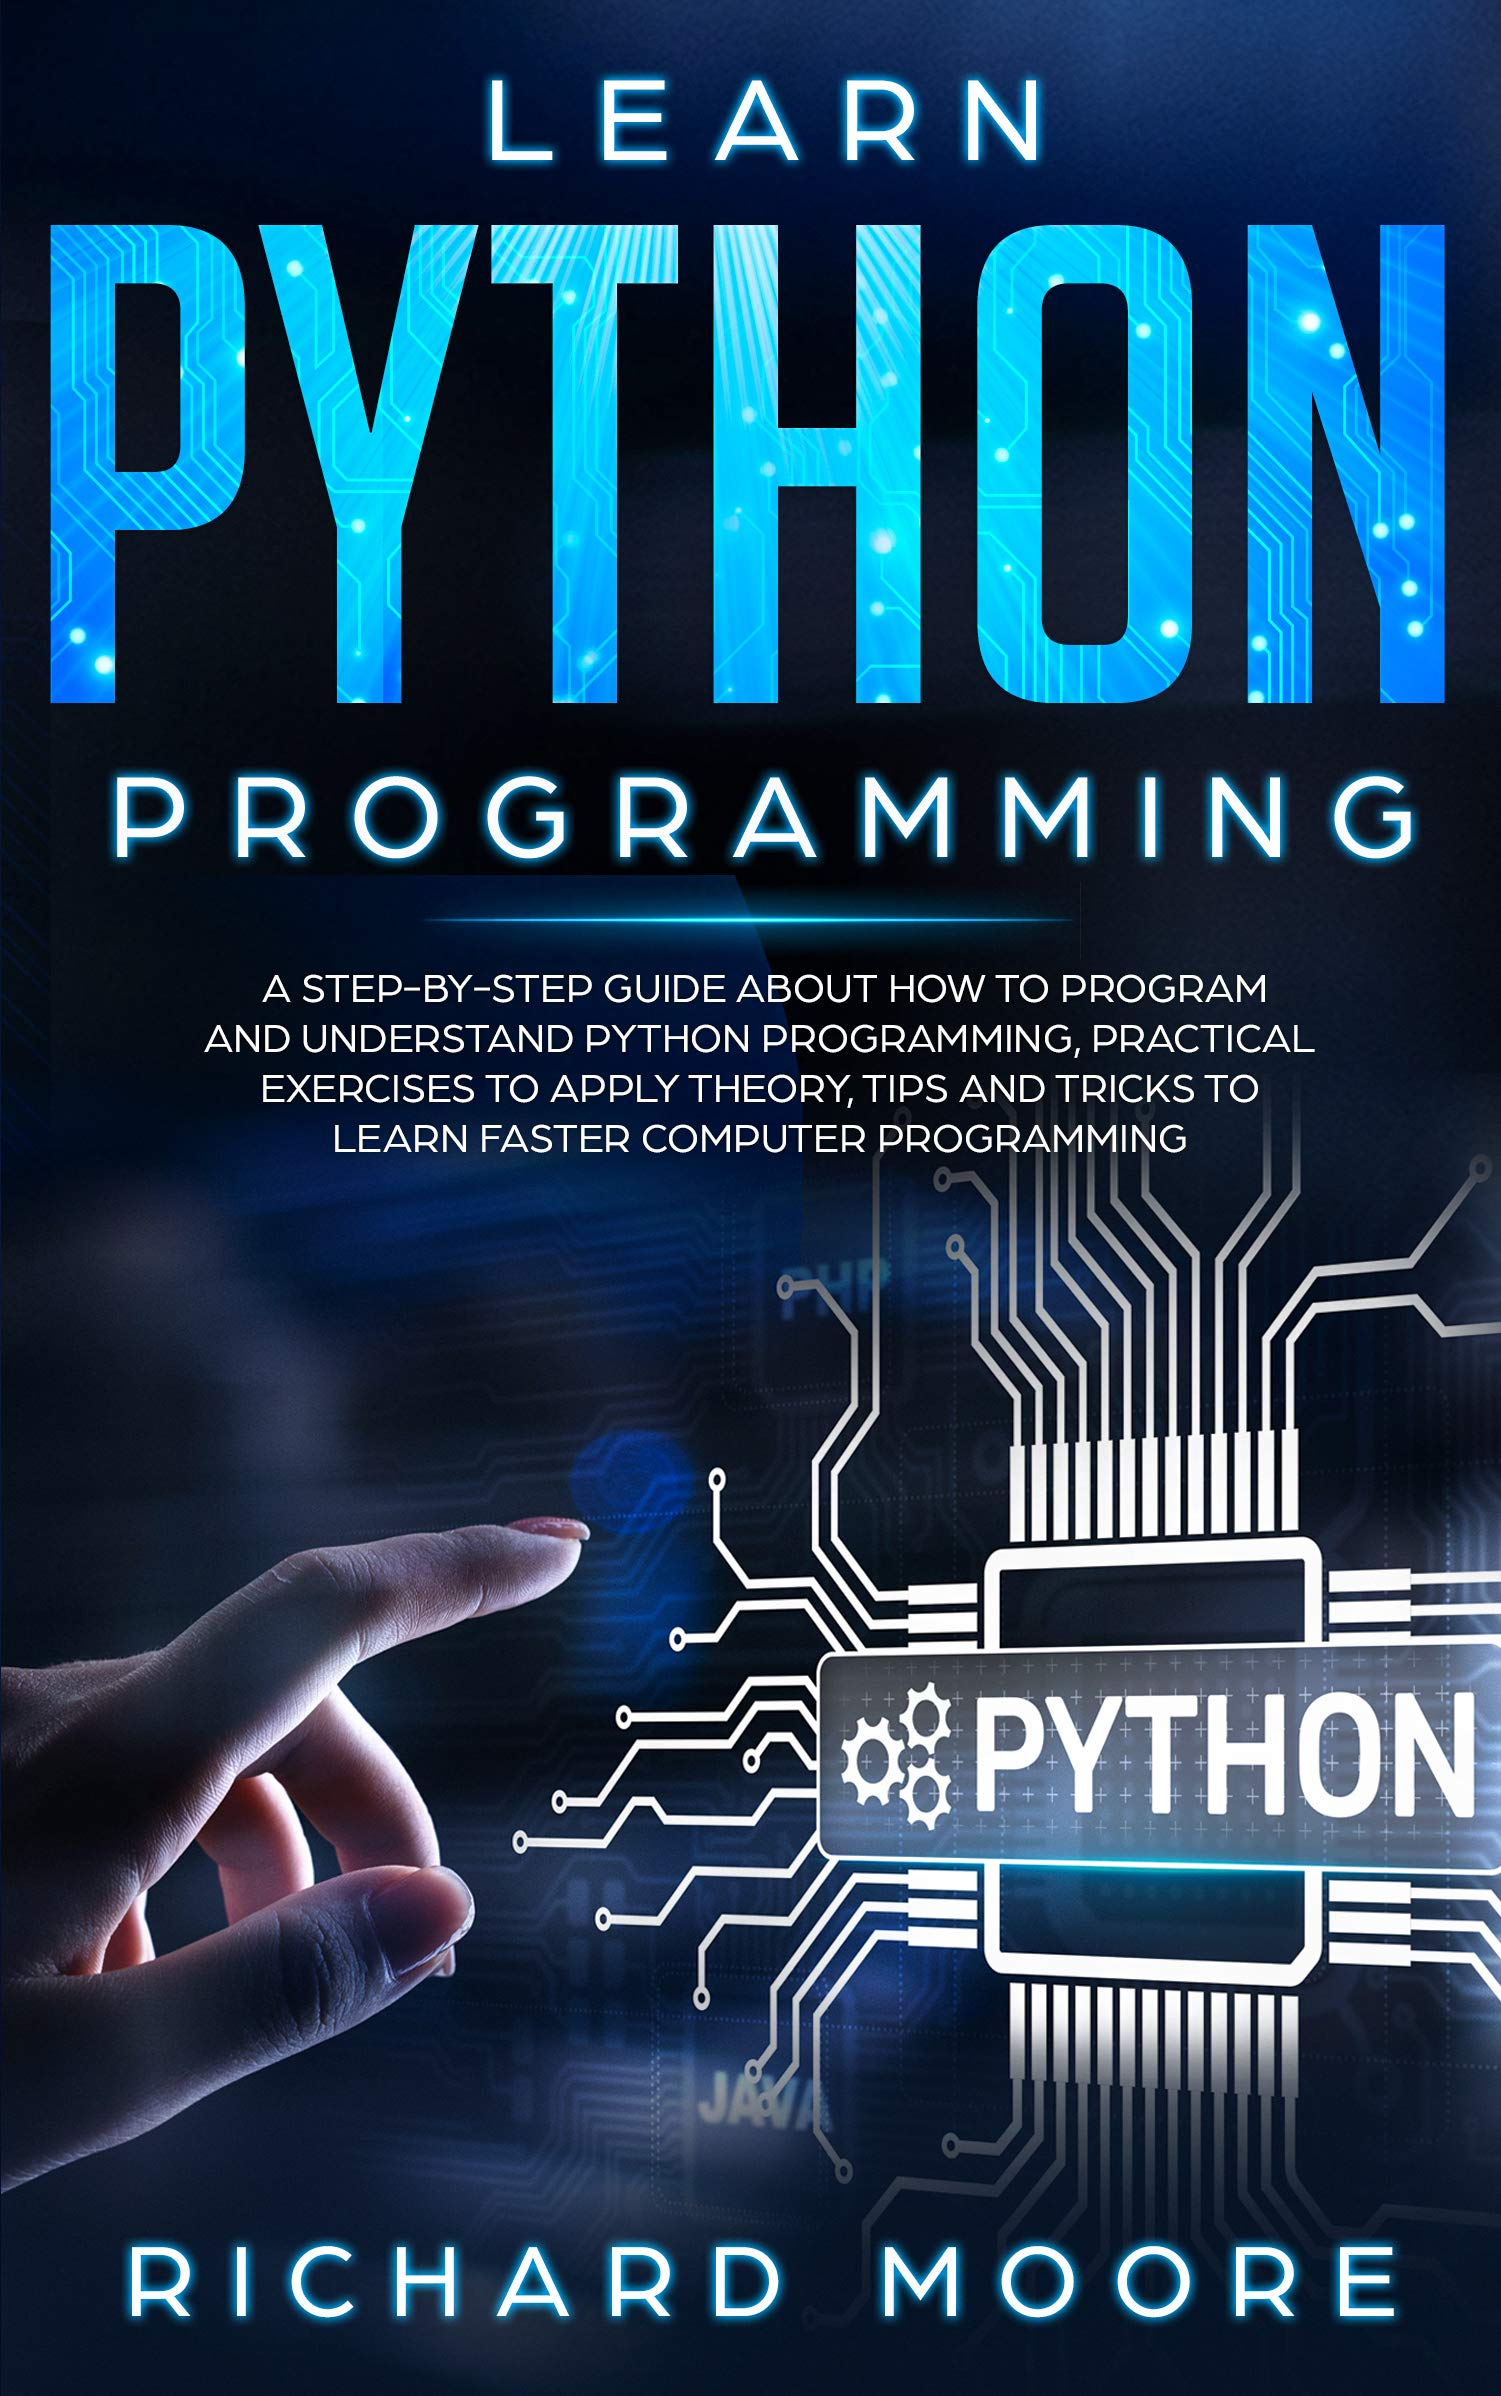 Learn Python Programming: A Step-by-Step Guide about How to Program and Understand Python Programming, Practical Exercises to Apply Theory, Tips and Tricks to Learn Faster Computer Programming